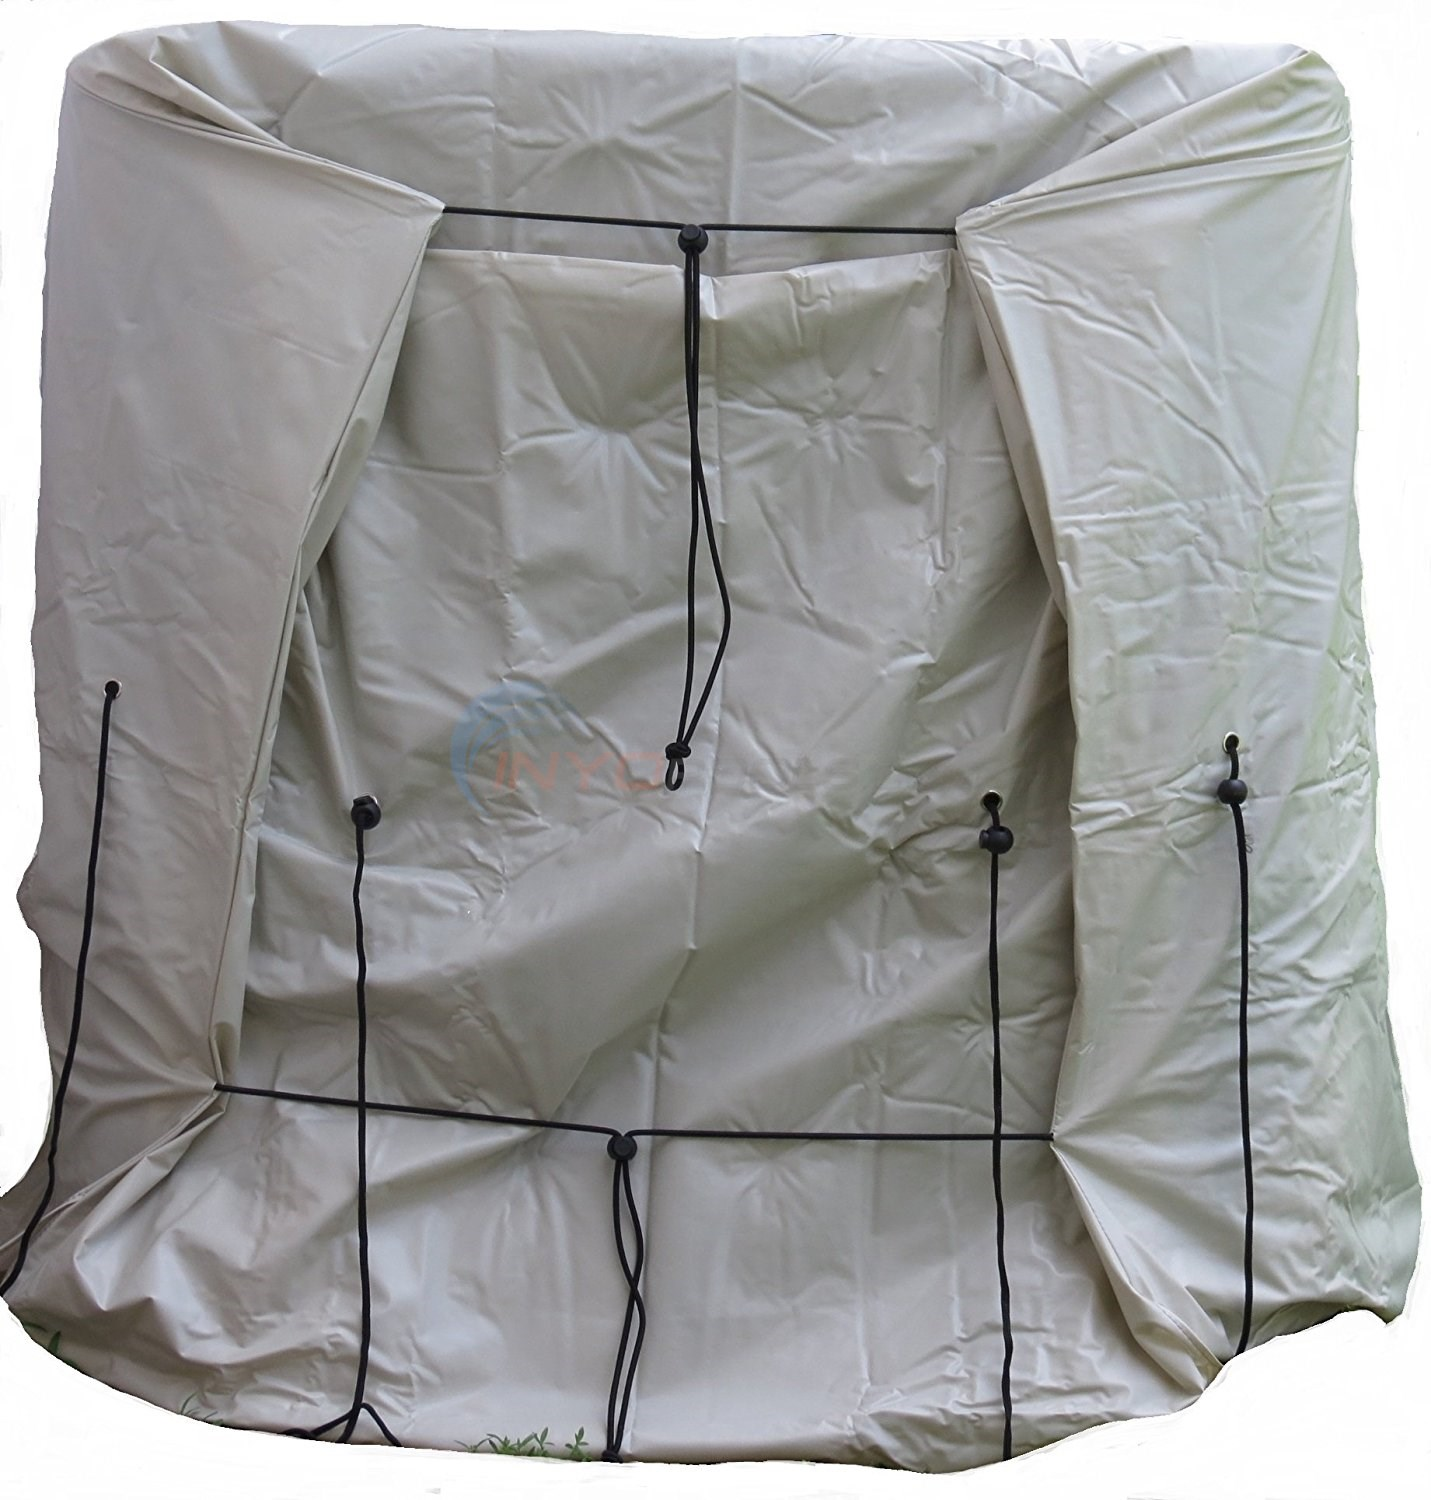 Pool Heat Pump Cover - One Size Fits All